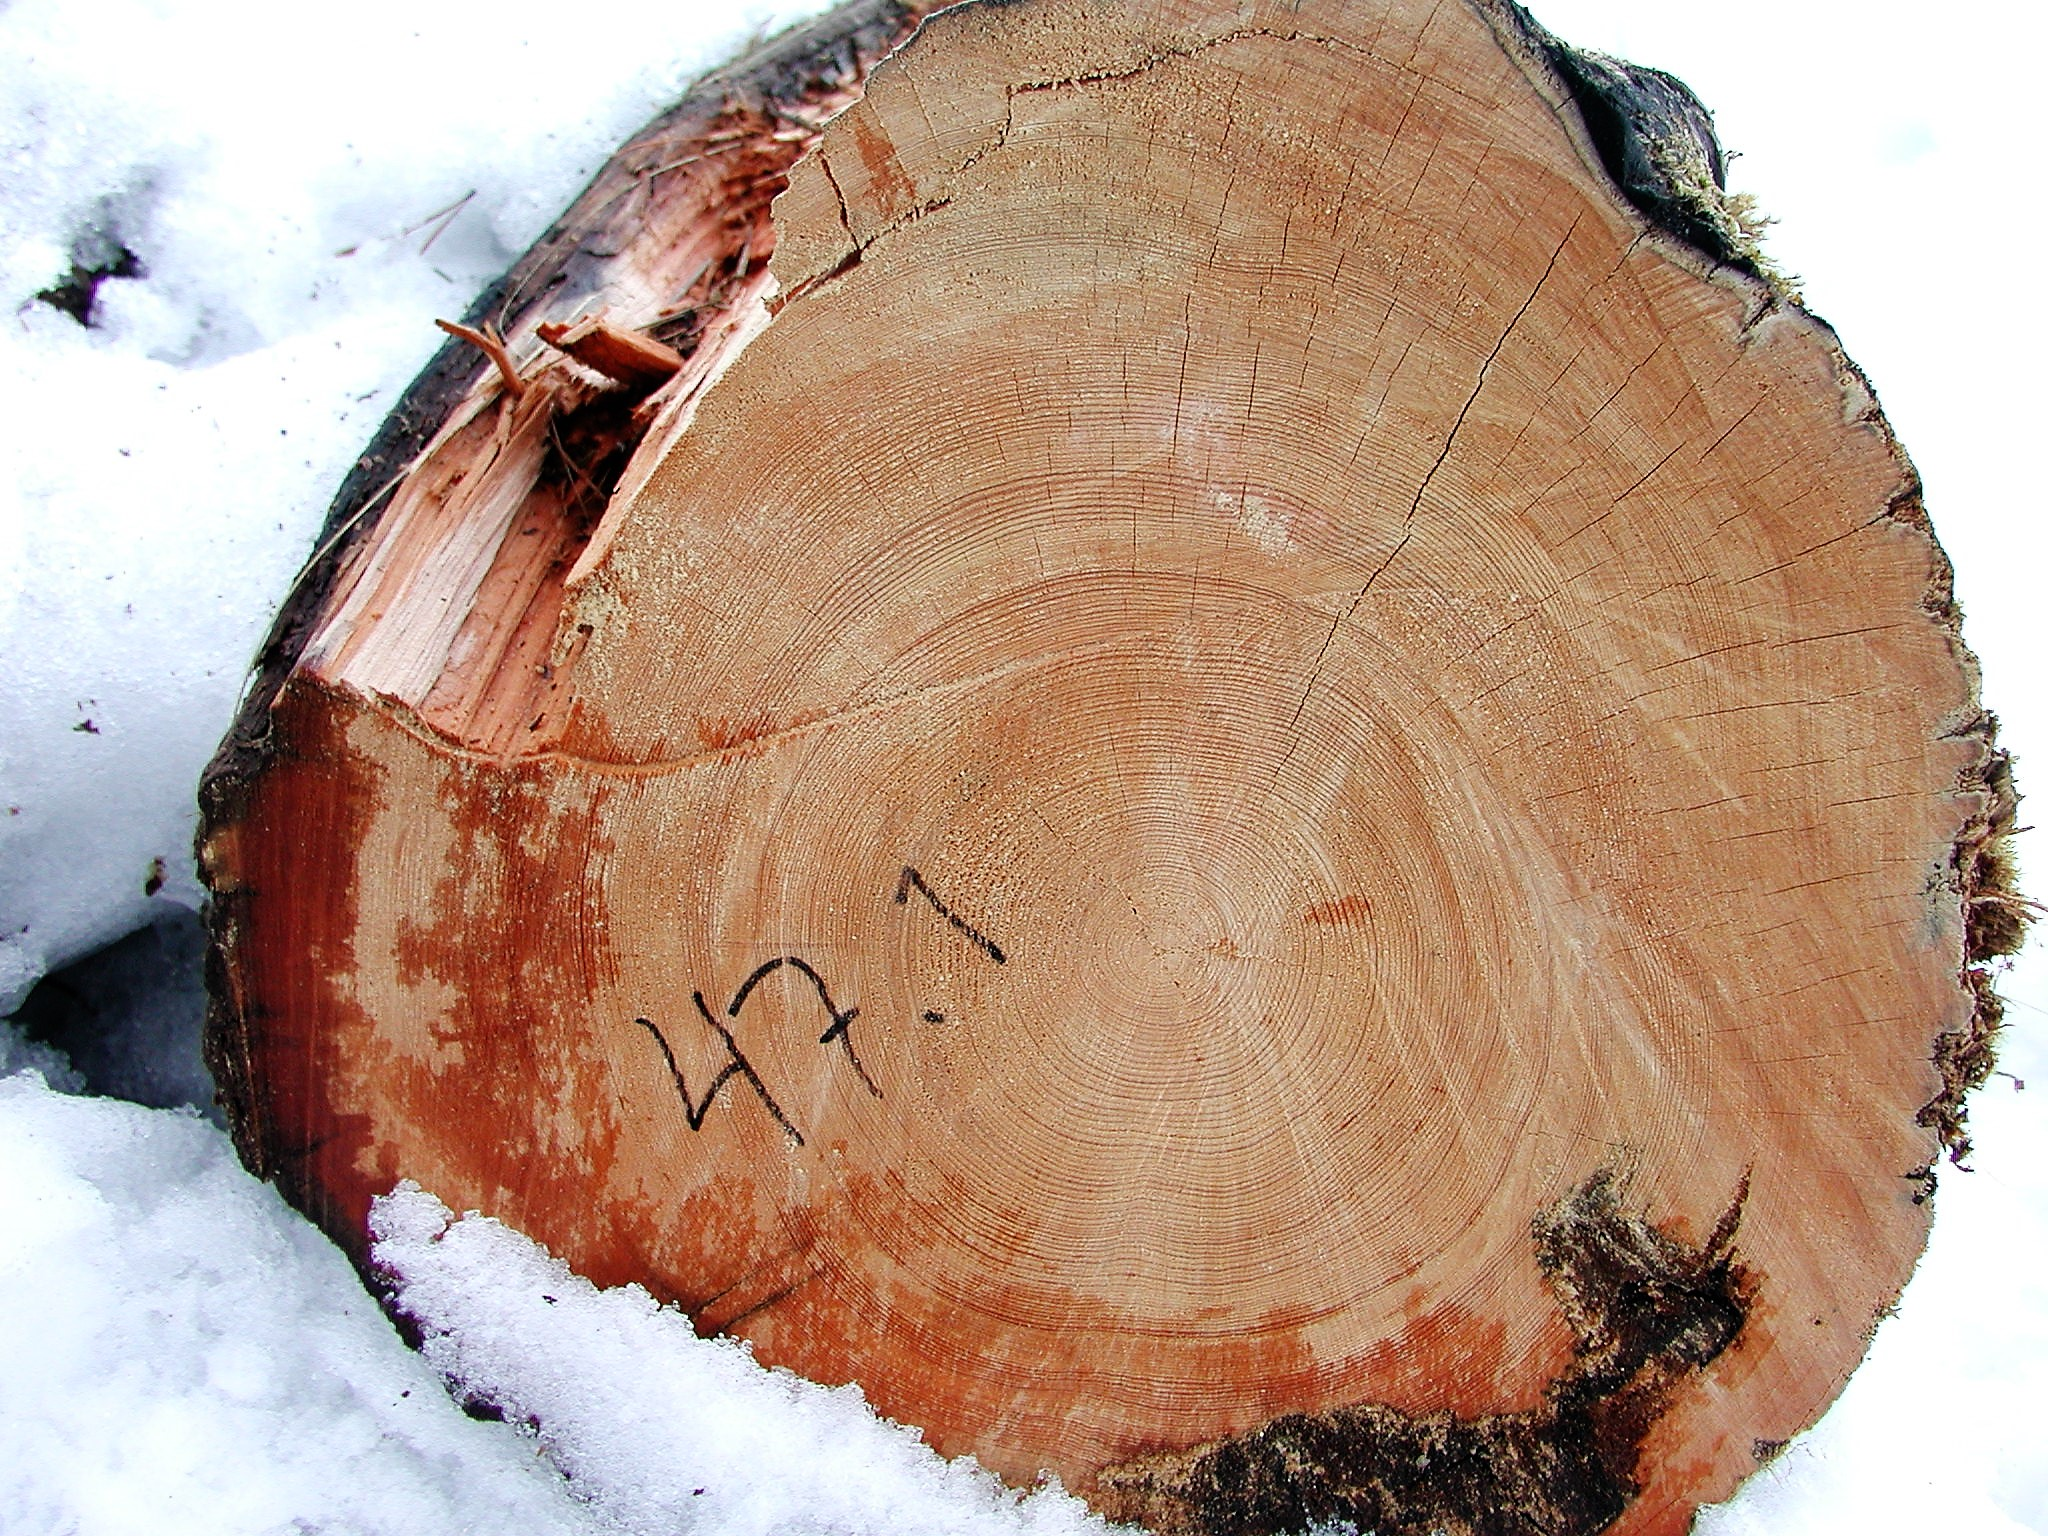 The preserved rings of a pine tree, that started growing in 1369 and fell into a